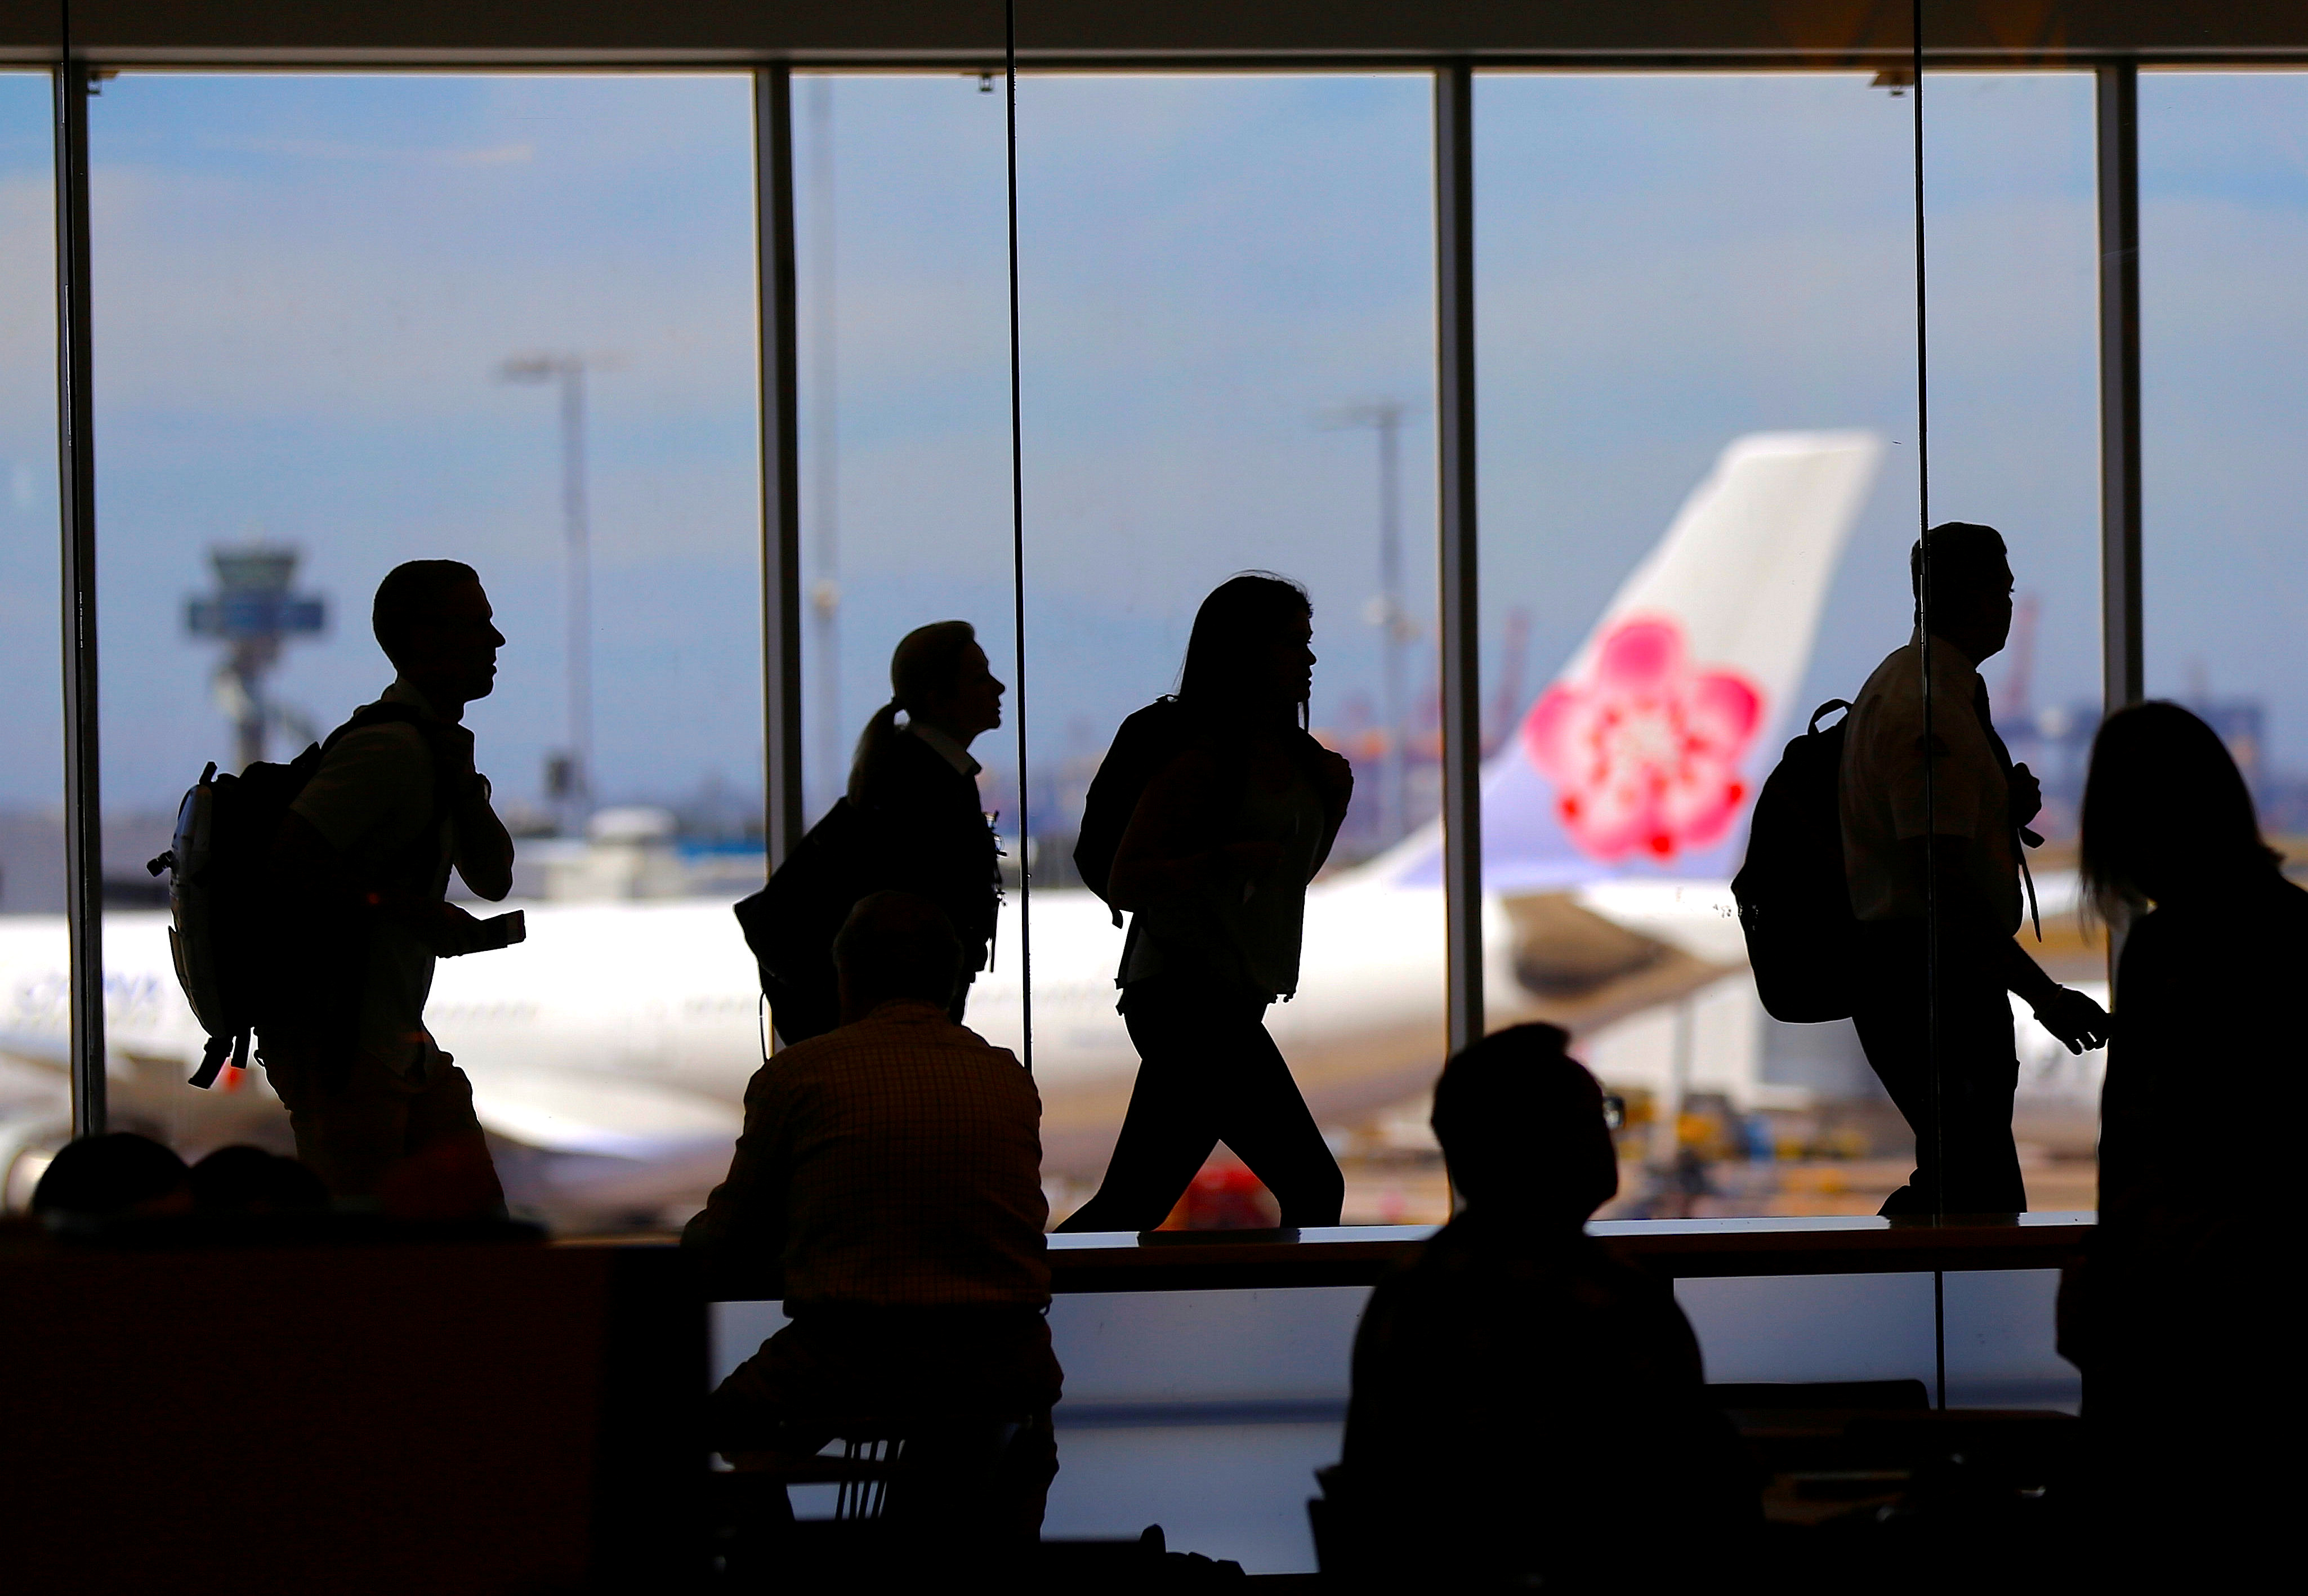 Passengers walk with their luggage towards departure gates at Sydney International Airport in Australia, October 25, 2017. Picture taken October 25, 2017.     REUTERS/Steven Saphore